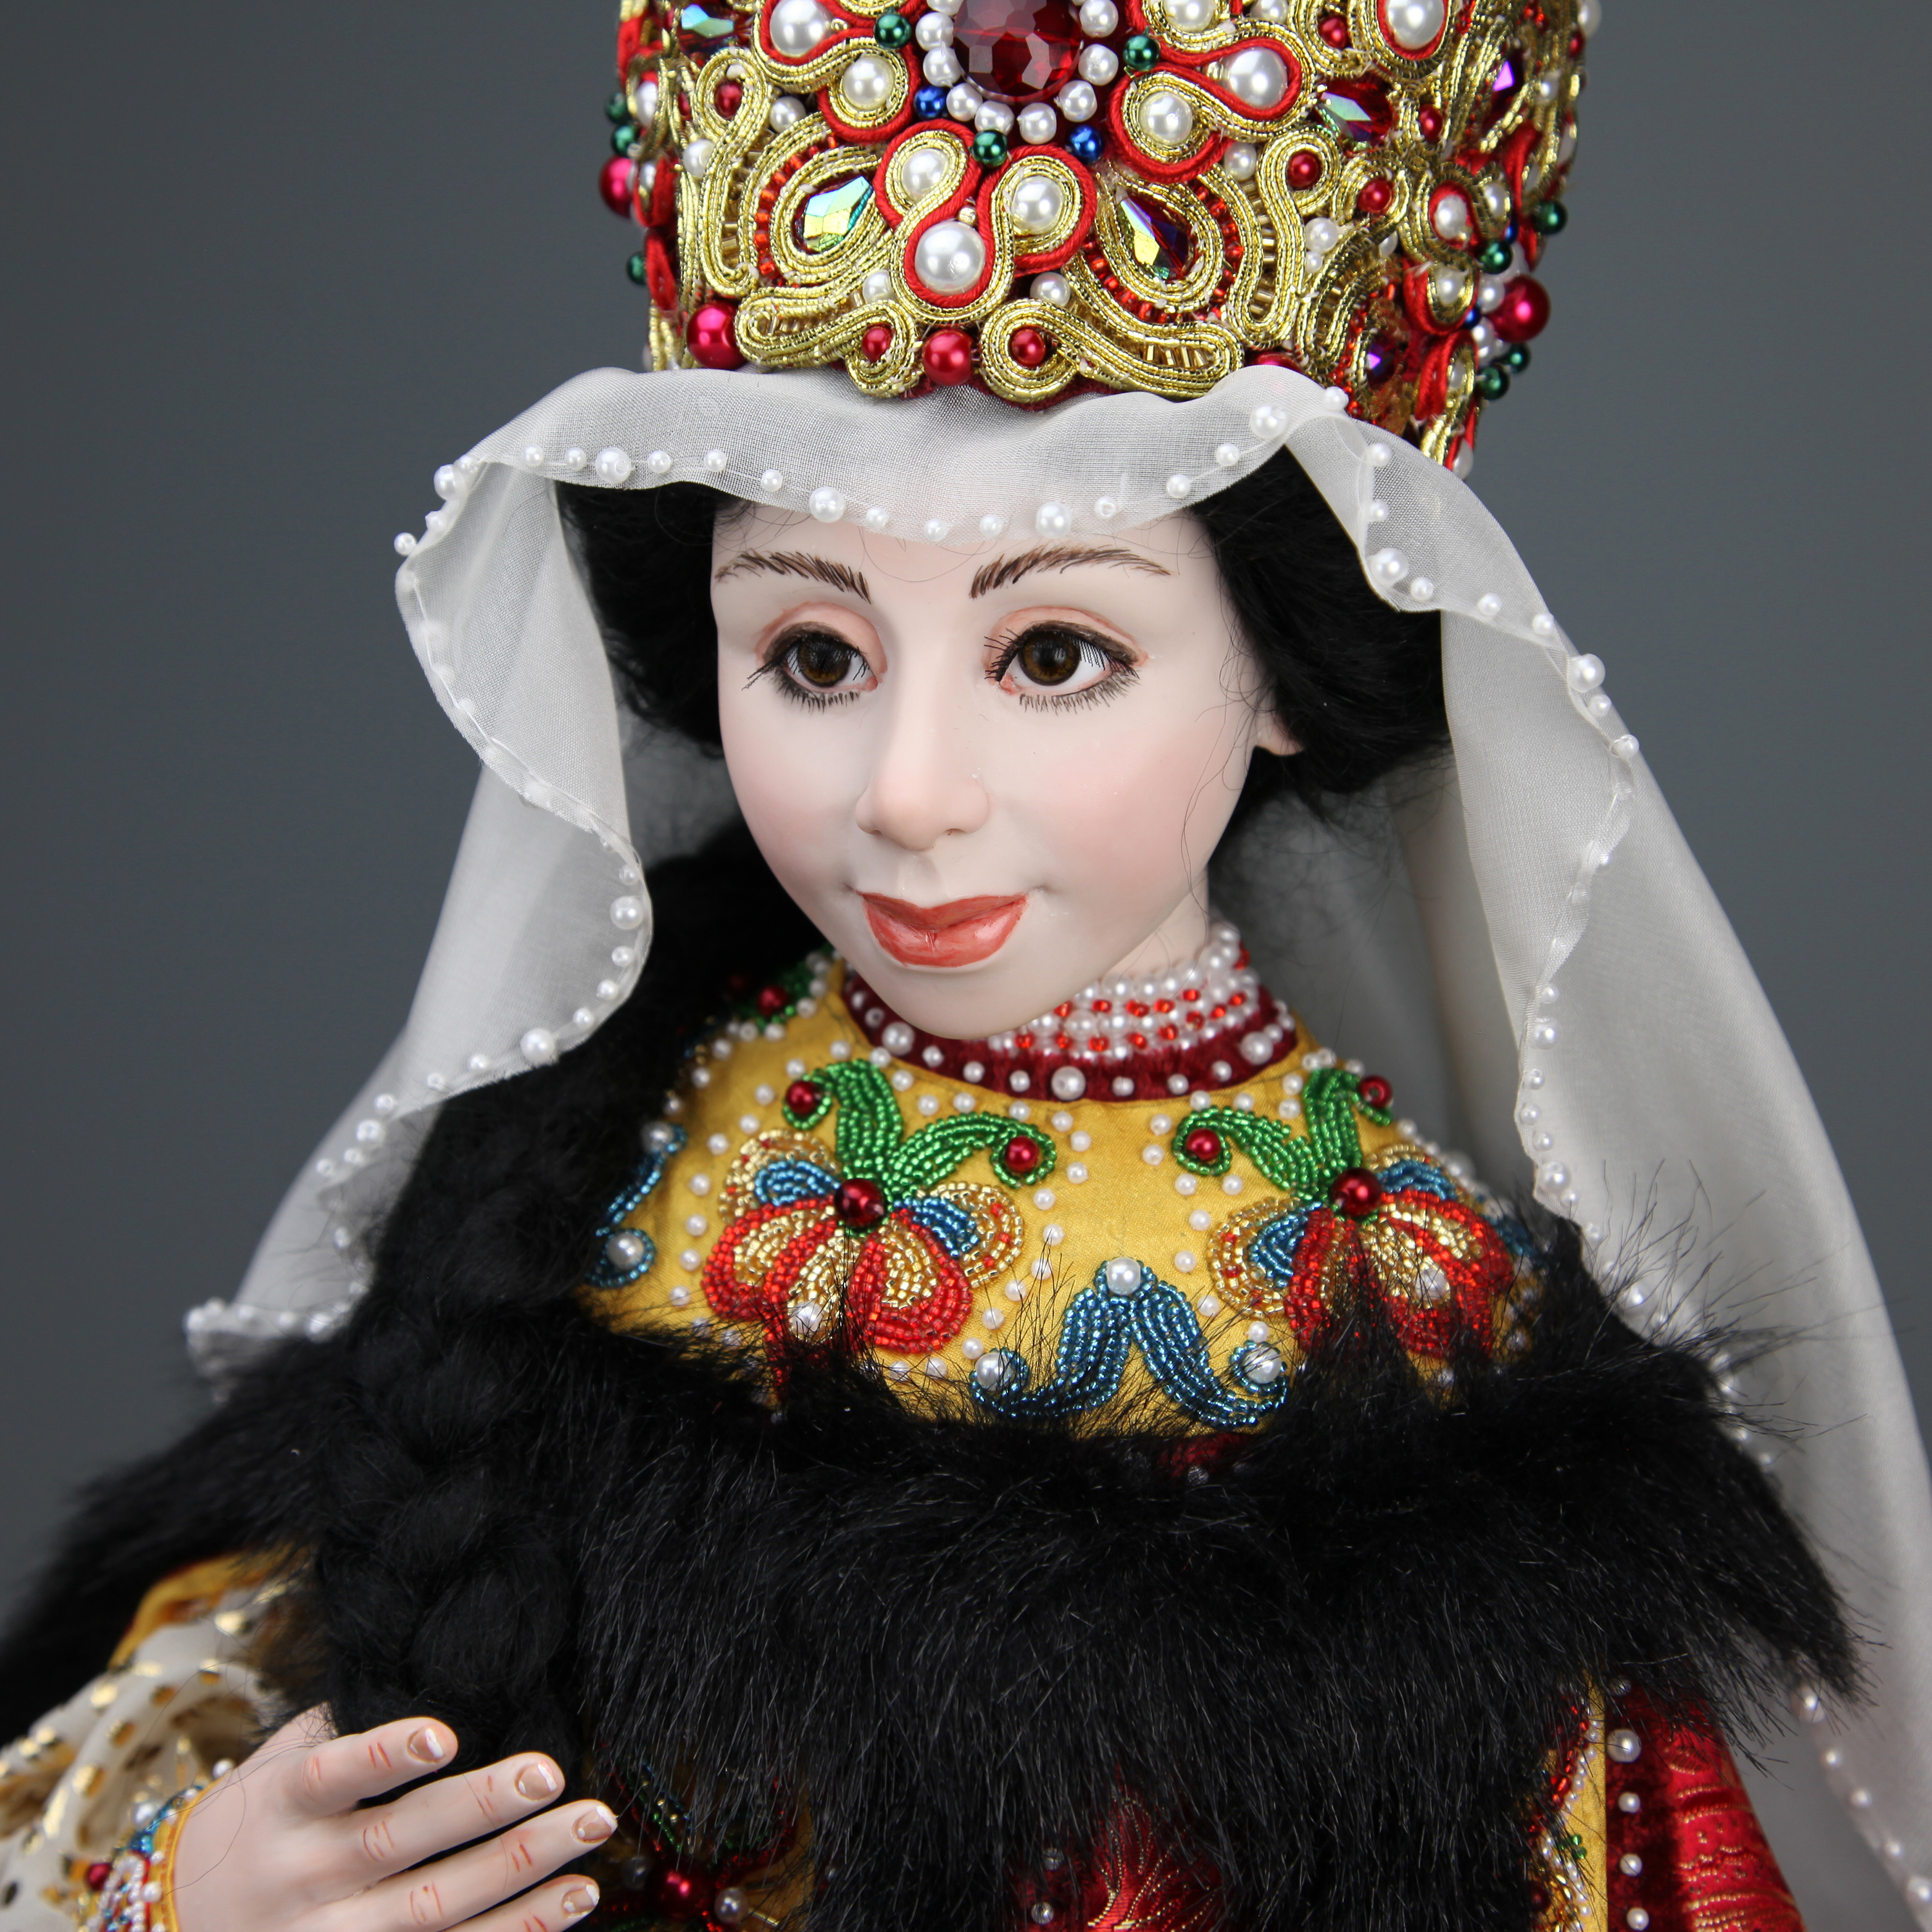 Katherine - One-Of-A-Kind Doll by Tanya Abaimova. Characters Gallery